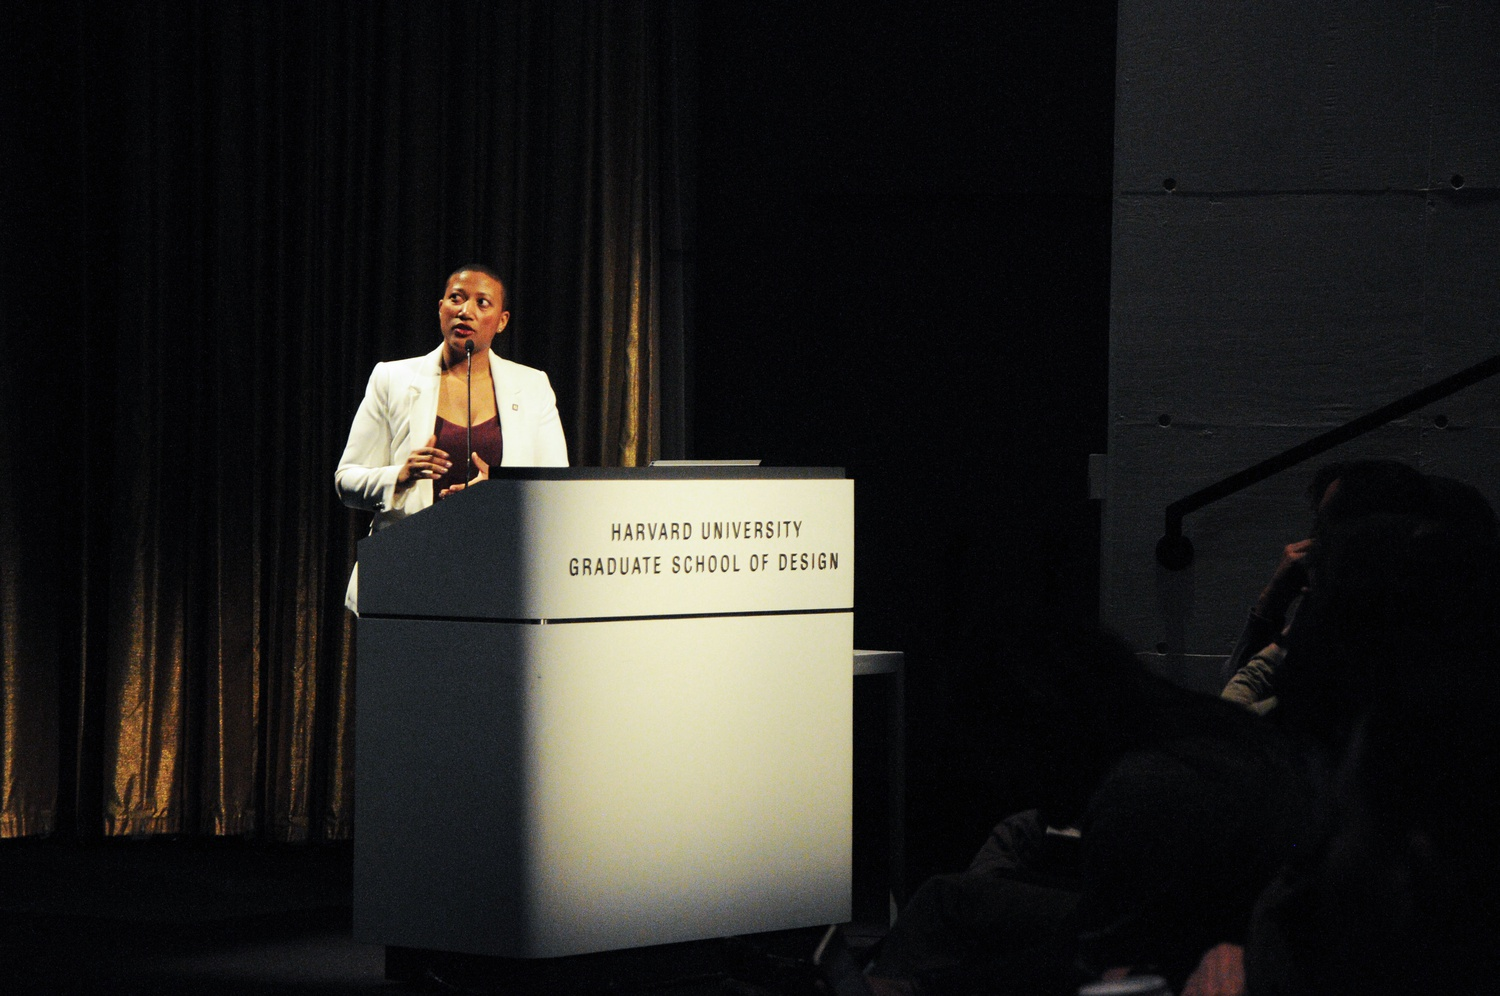 Kimberly Dowdell explains how administering equity in architecture can be redemptive. Citing the work that she has done in Detroit, Mich., Dowdell points out that purchasing vacant homes and then rehabbing them allows for those properties to host families that believe in the future of the city.